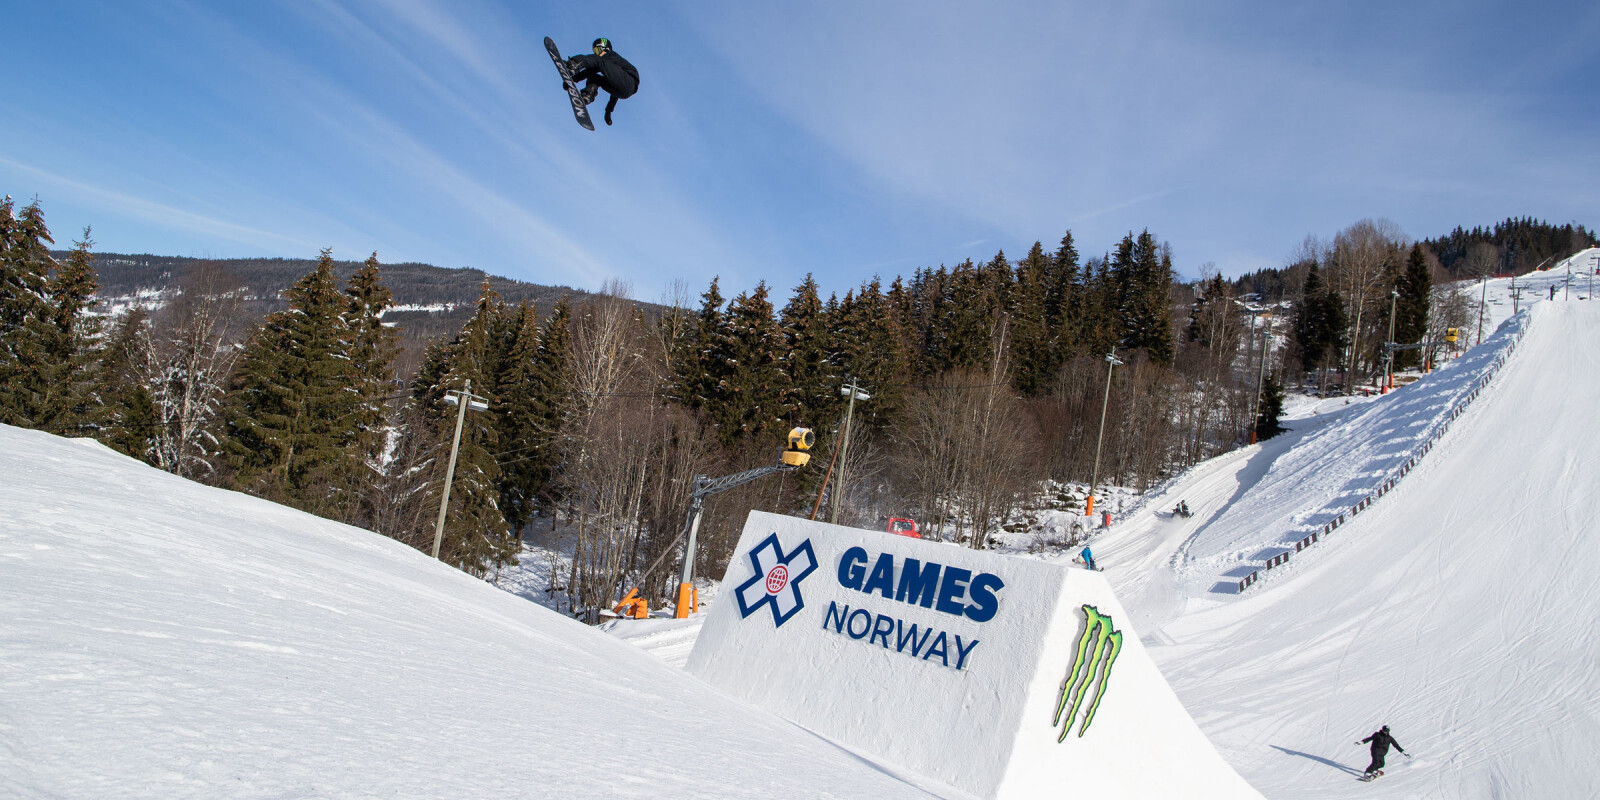 Friday practice @ X Games Norway 2020